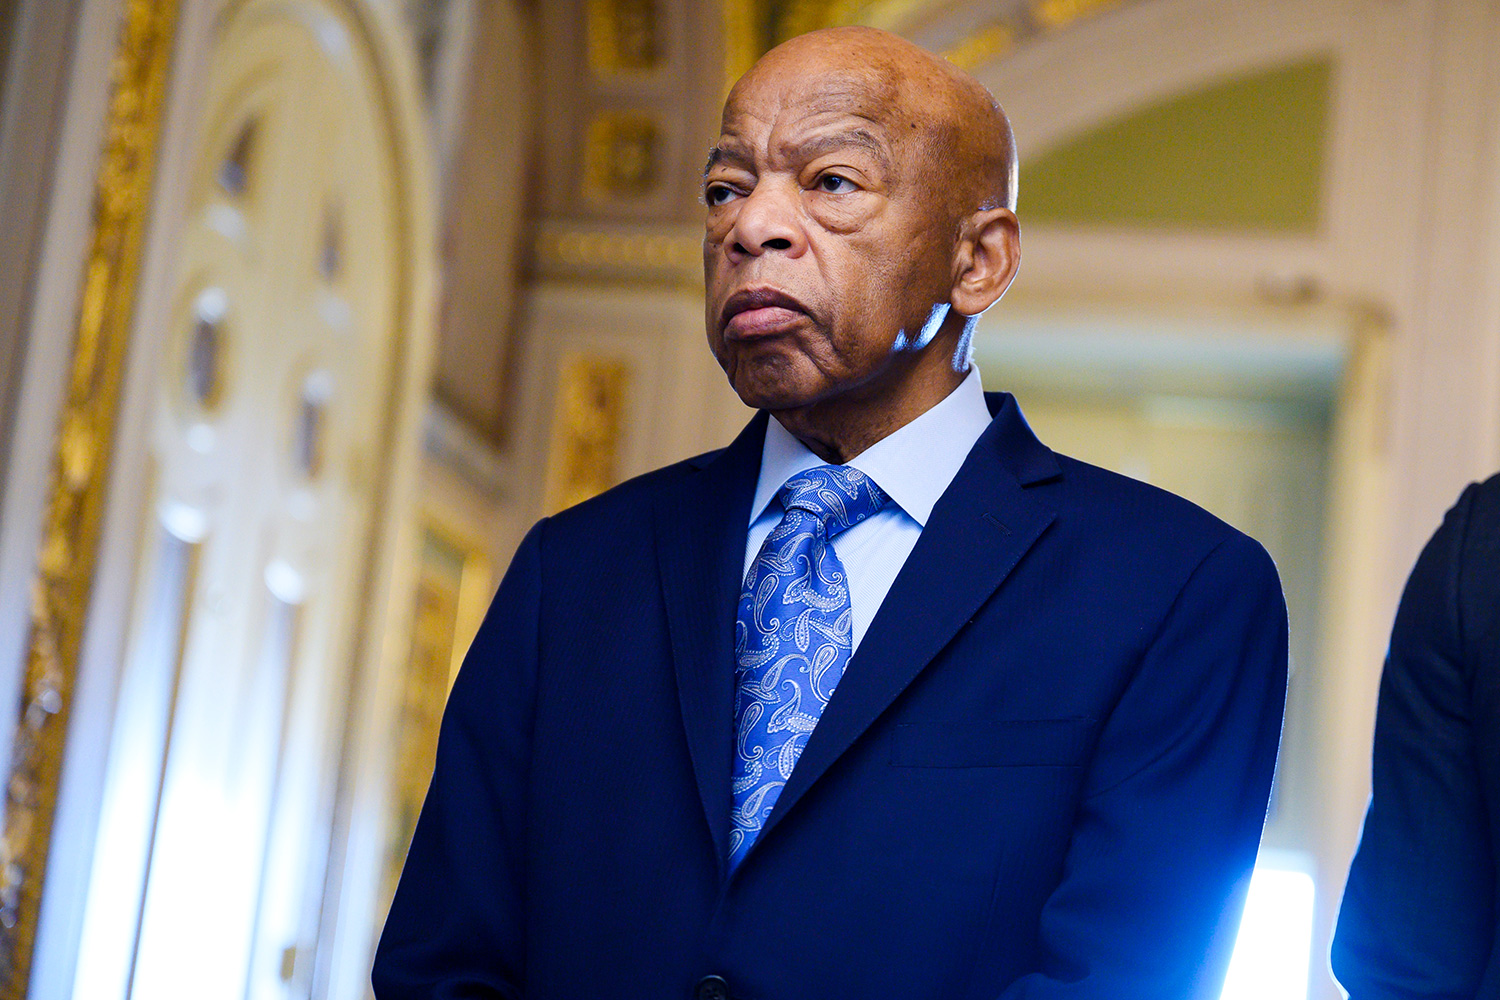 Rep. John Lewis, D-Ga., waits to enter the Senate chamber to listen to the farewell address of the Sen. Johnny Isakson, R-Ga., in the Capitol on Tuesday, December 3, 2019